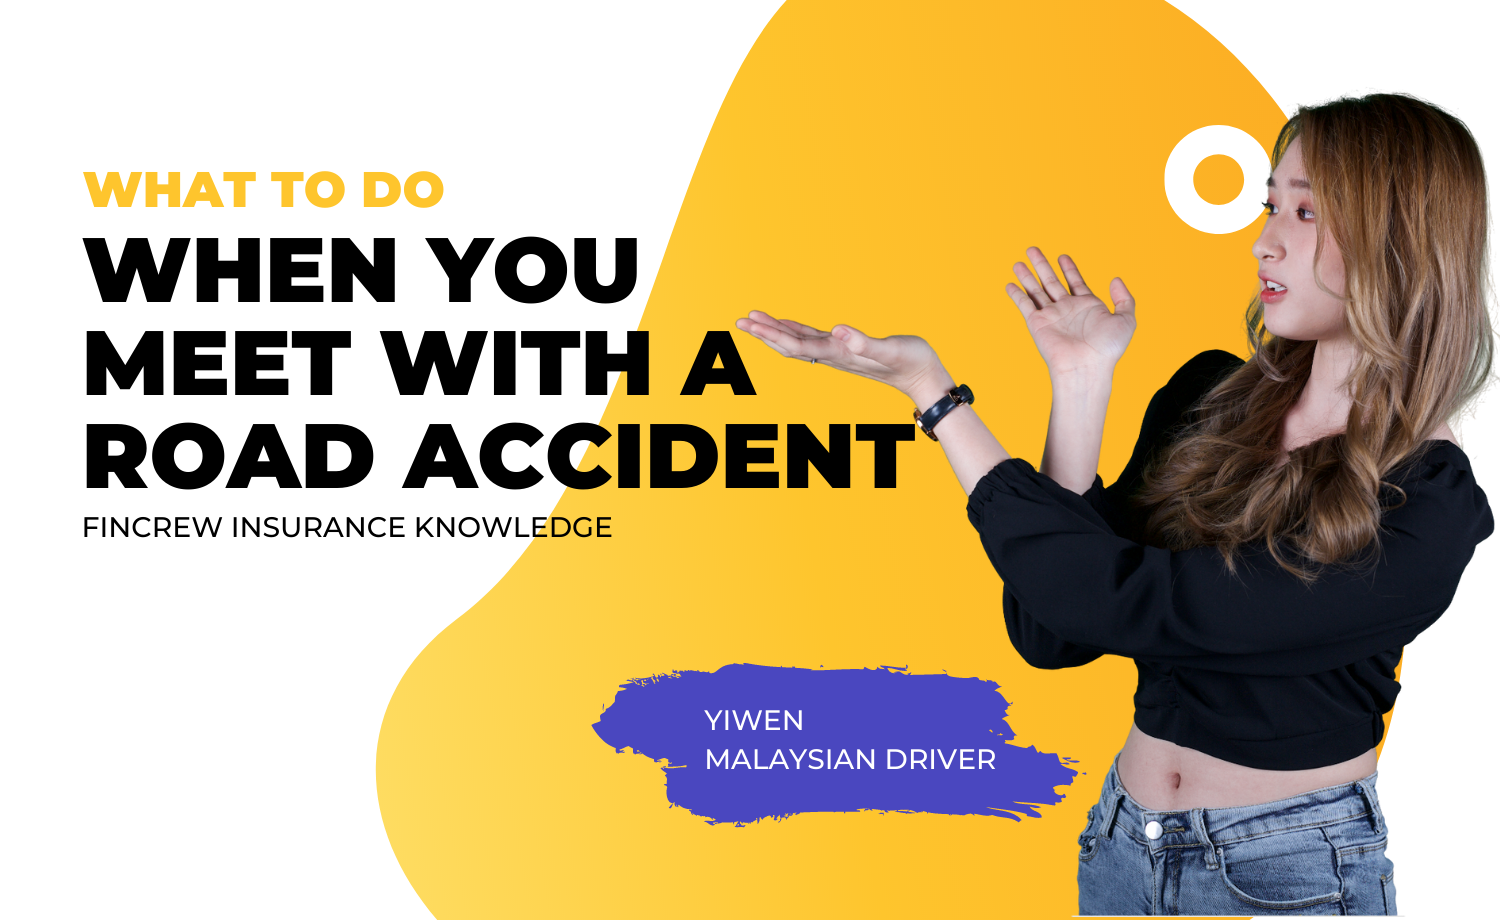 Procedure To Follow When You Meet With A Road Accident Blog Featured Image